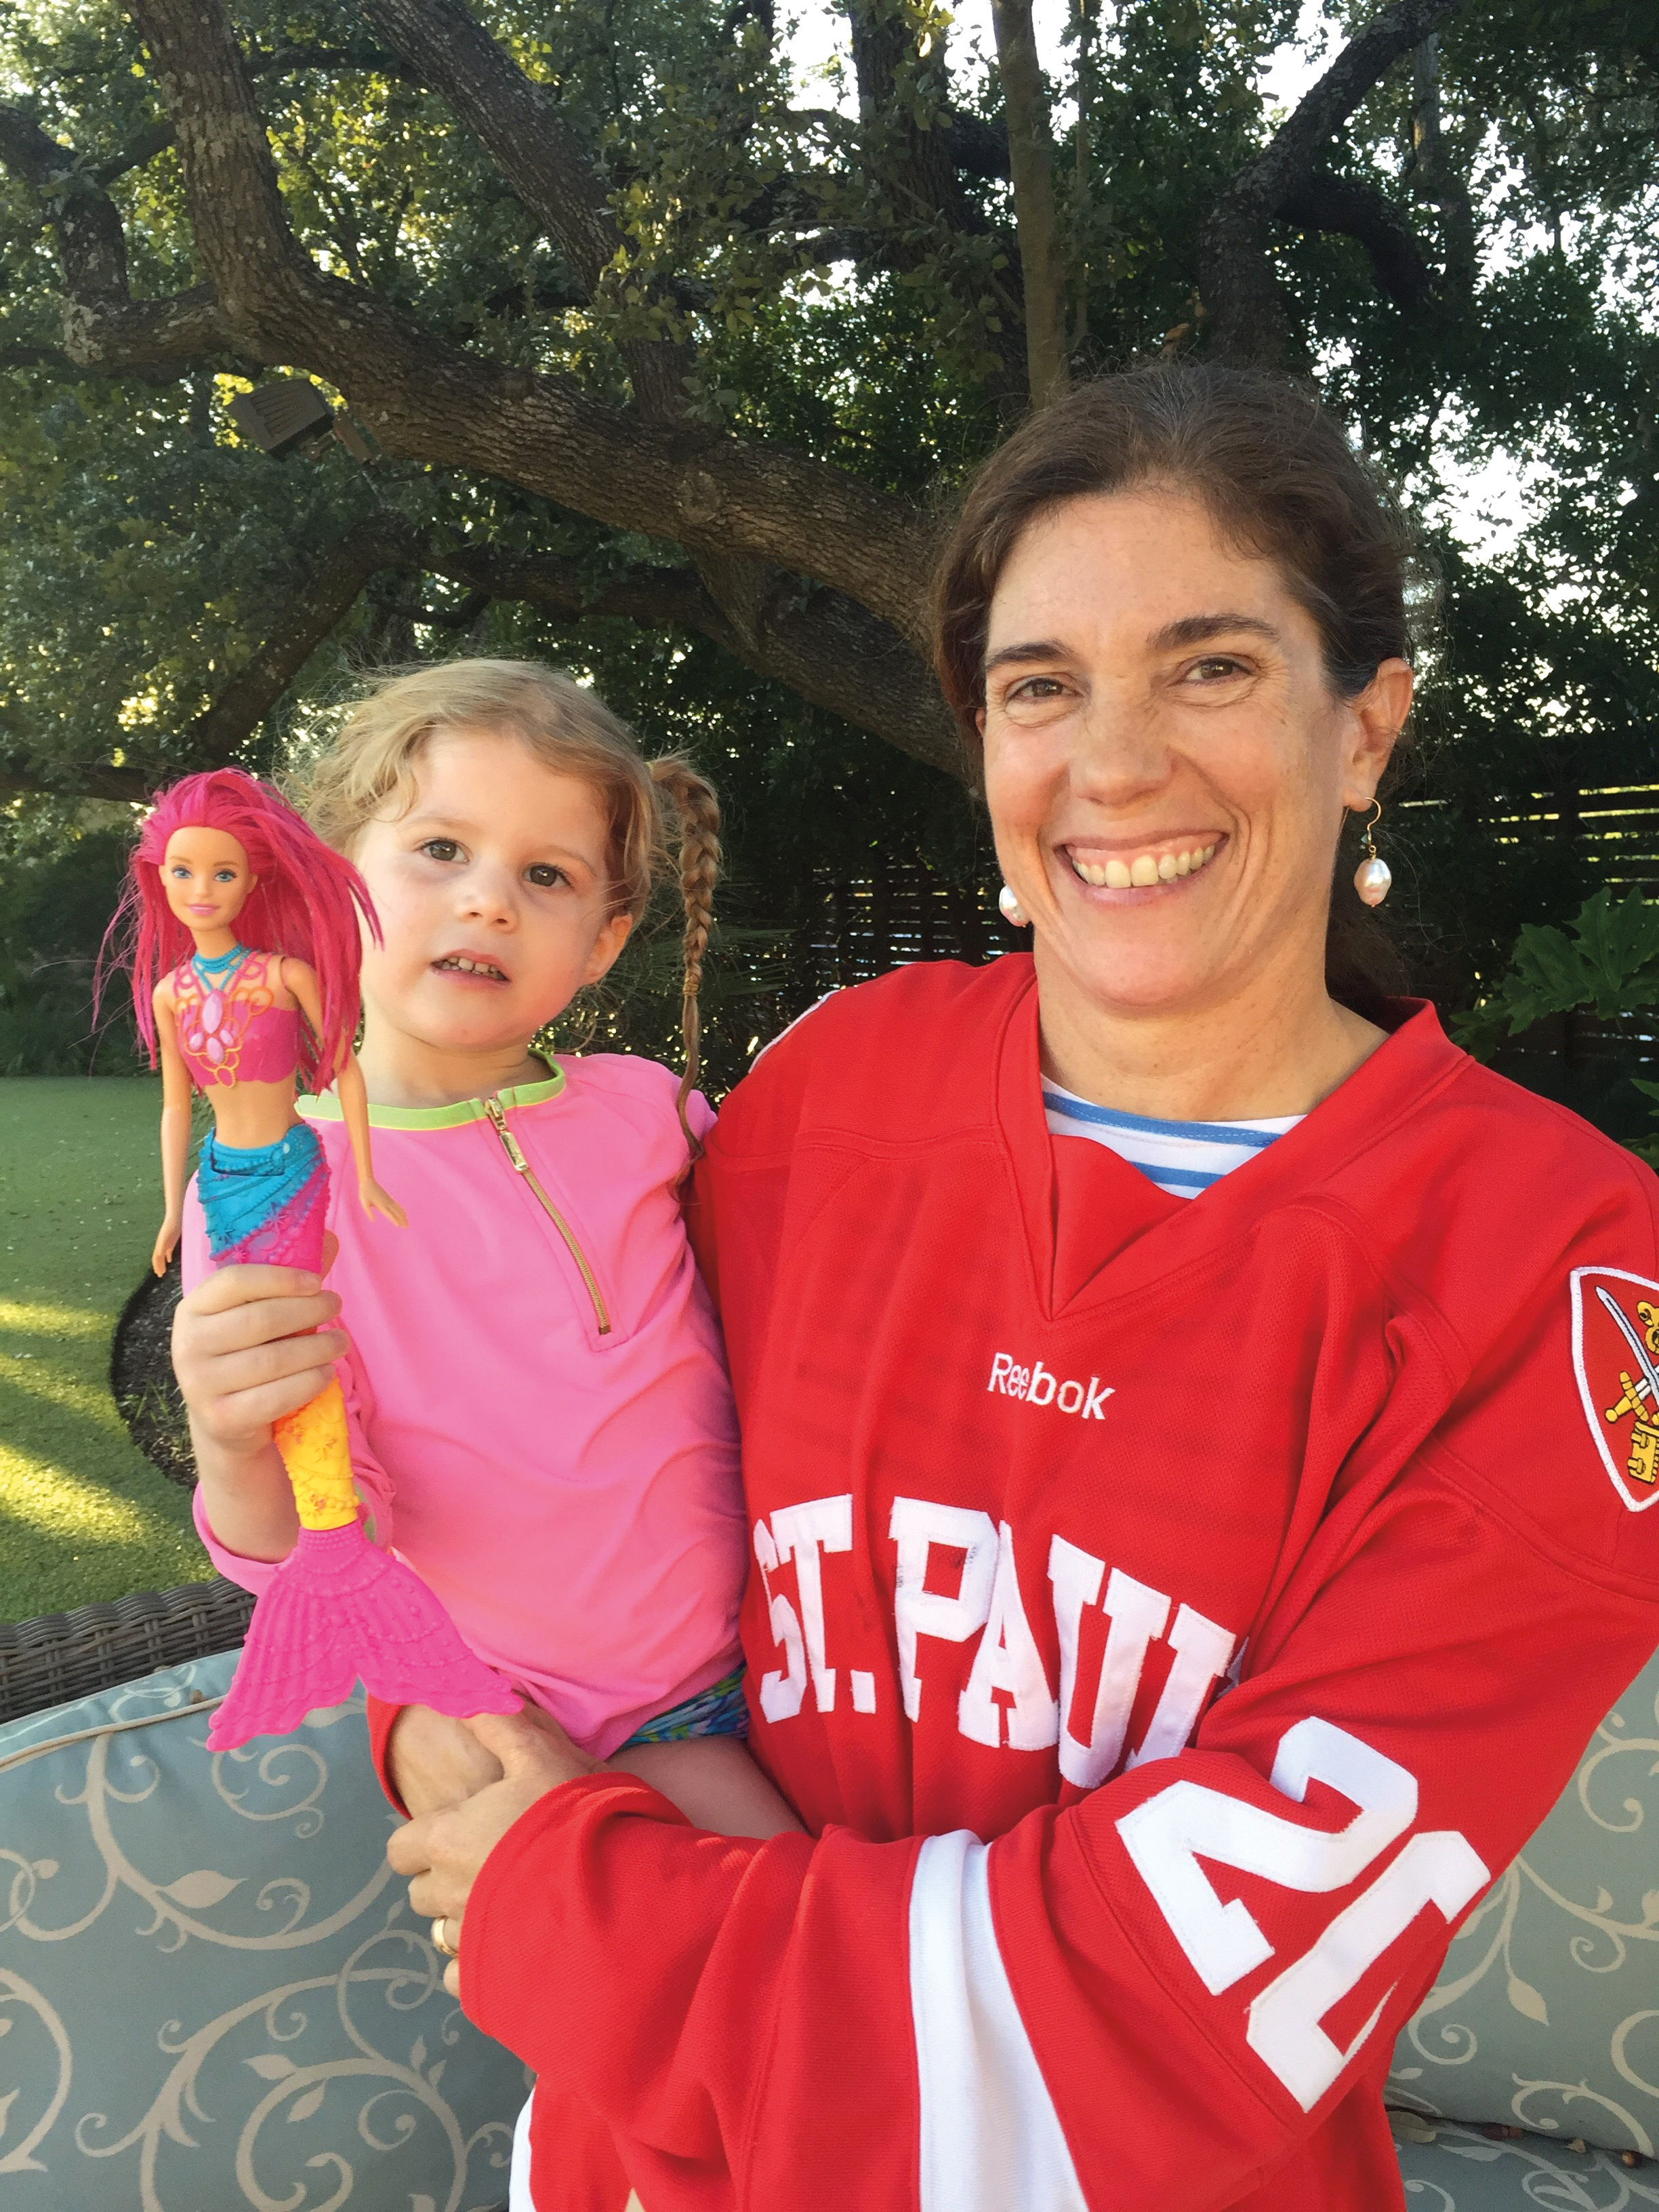 Roxana Richardson '90 showing her SPS hockey pride with her daughter, Lillian.